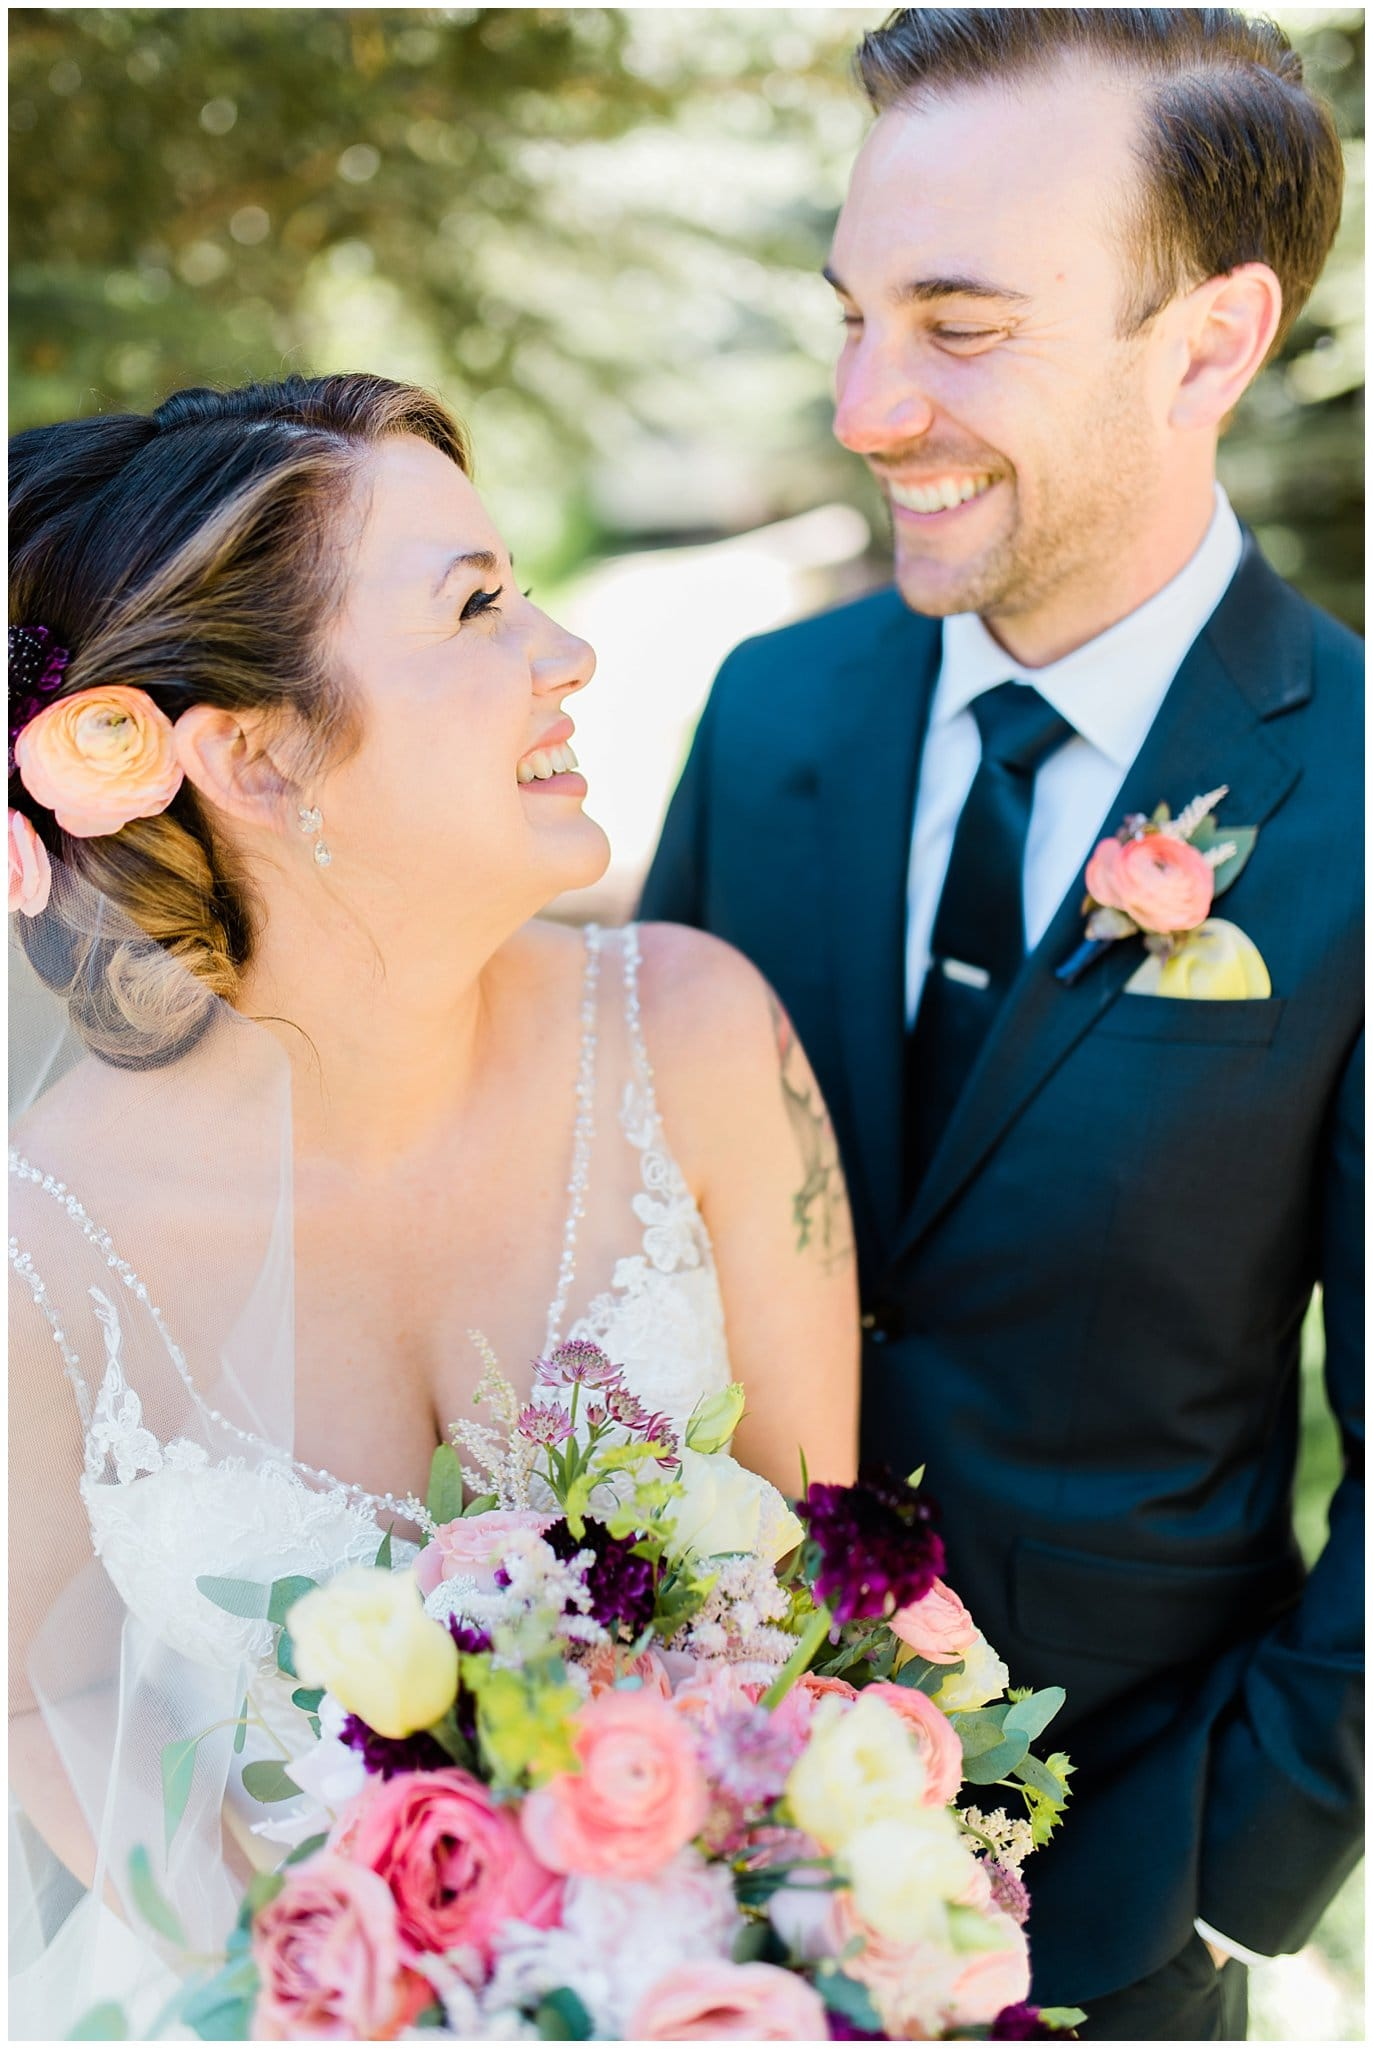 Bride and groom after first look at Sonnenalp Hotel wedding by Vail wedding photographer Jennie Crate